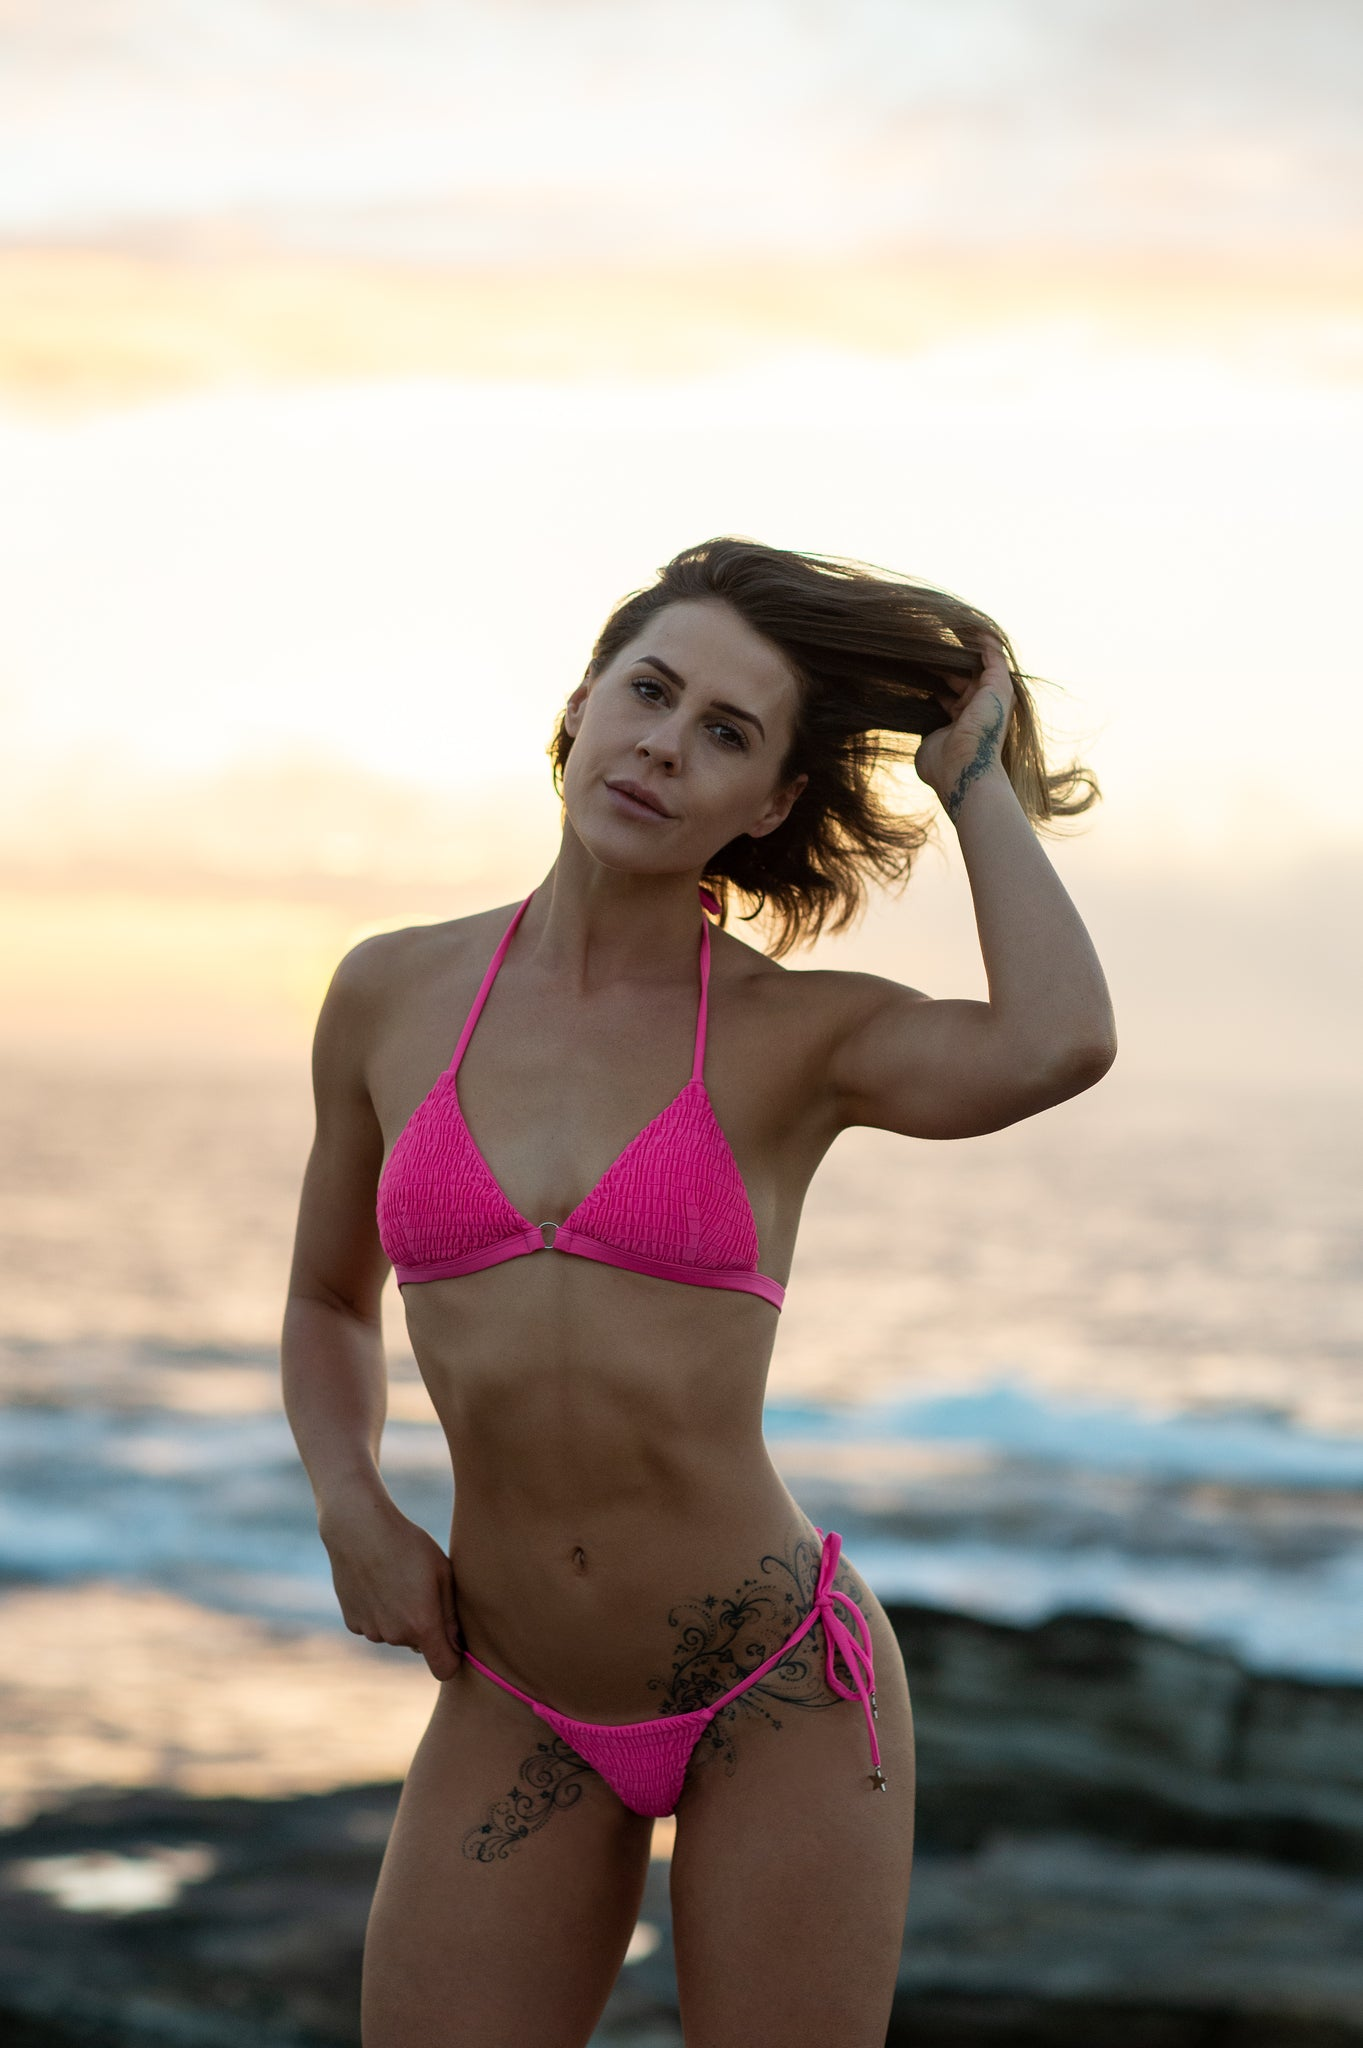 Los Angeles String in Hot Pink by The Hessian Collection - A Cheeky Hot Bikini String Bikini